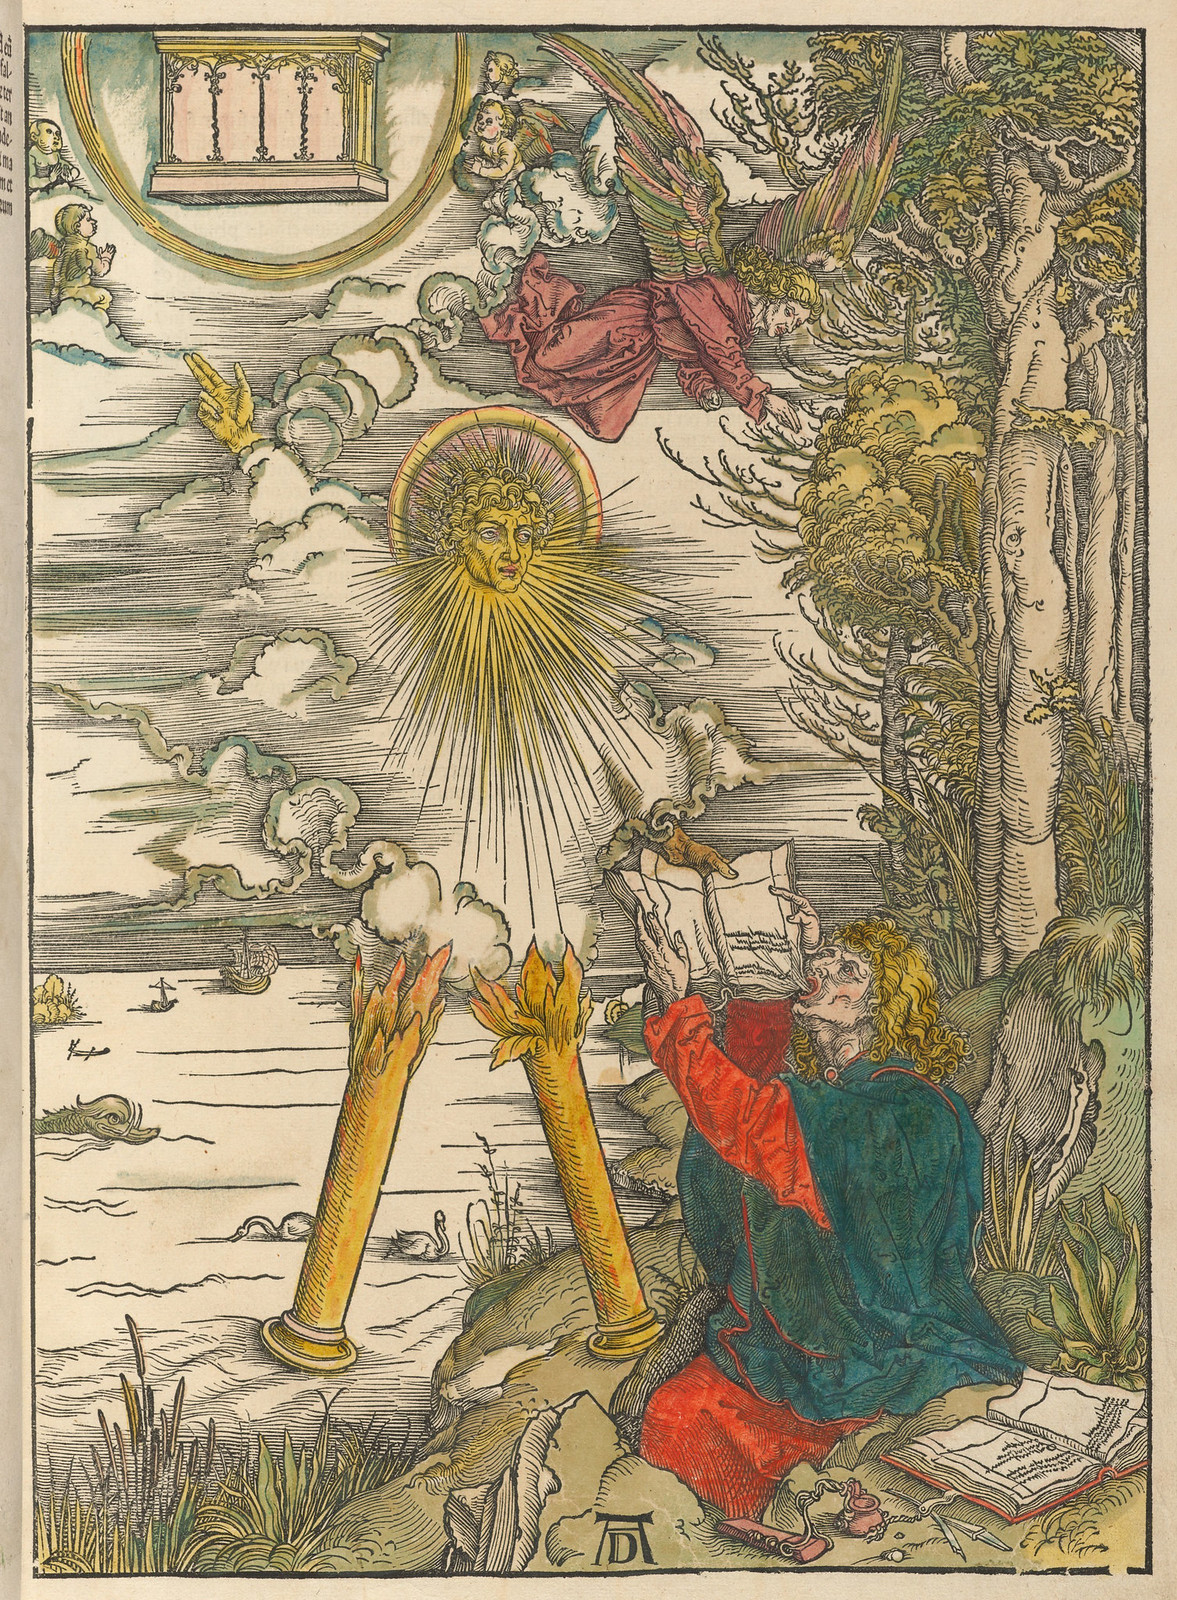 Albrecht Dürer - St John devouring the book, Plate nine of fifteen from the Latin edition of The Apocalypse series, hand colored, printed 1511